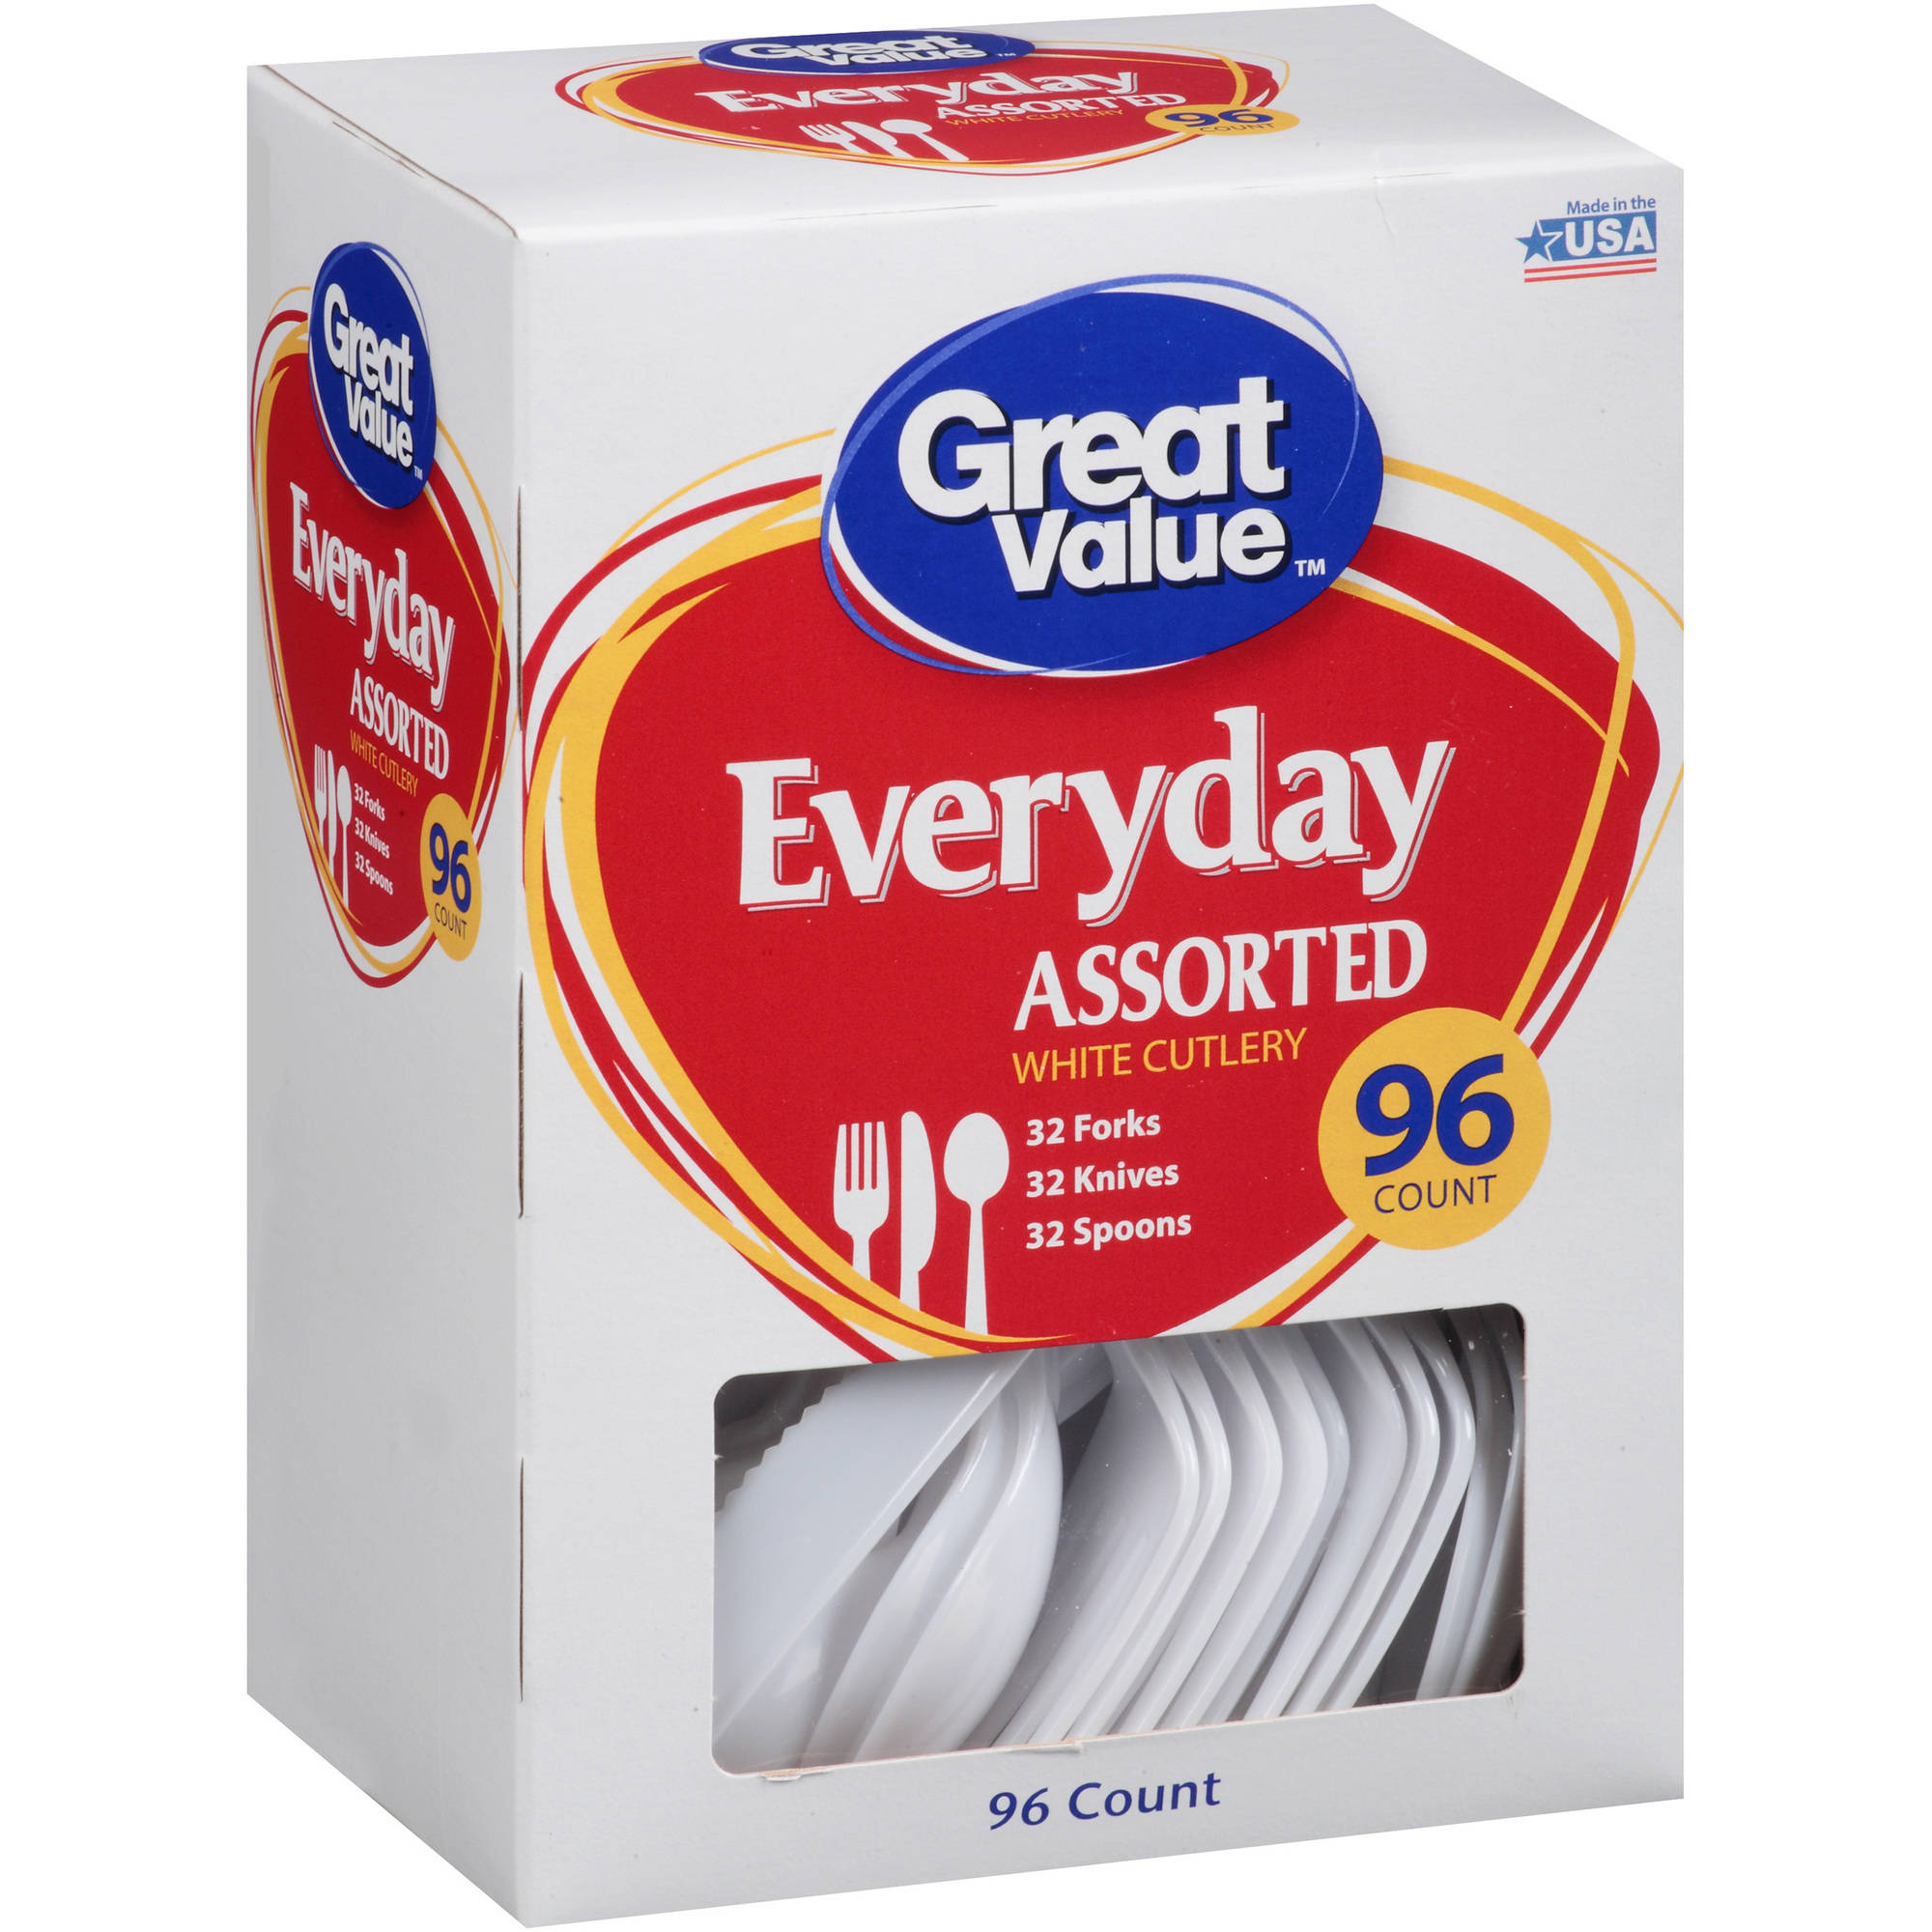 Great Value Everyday Assorted Cutlery, 96 ct